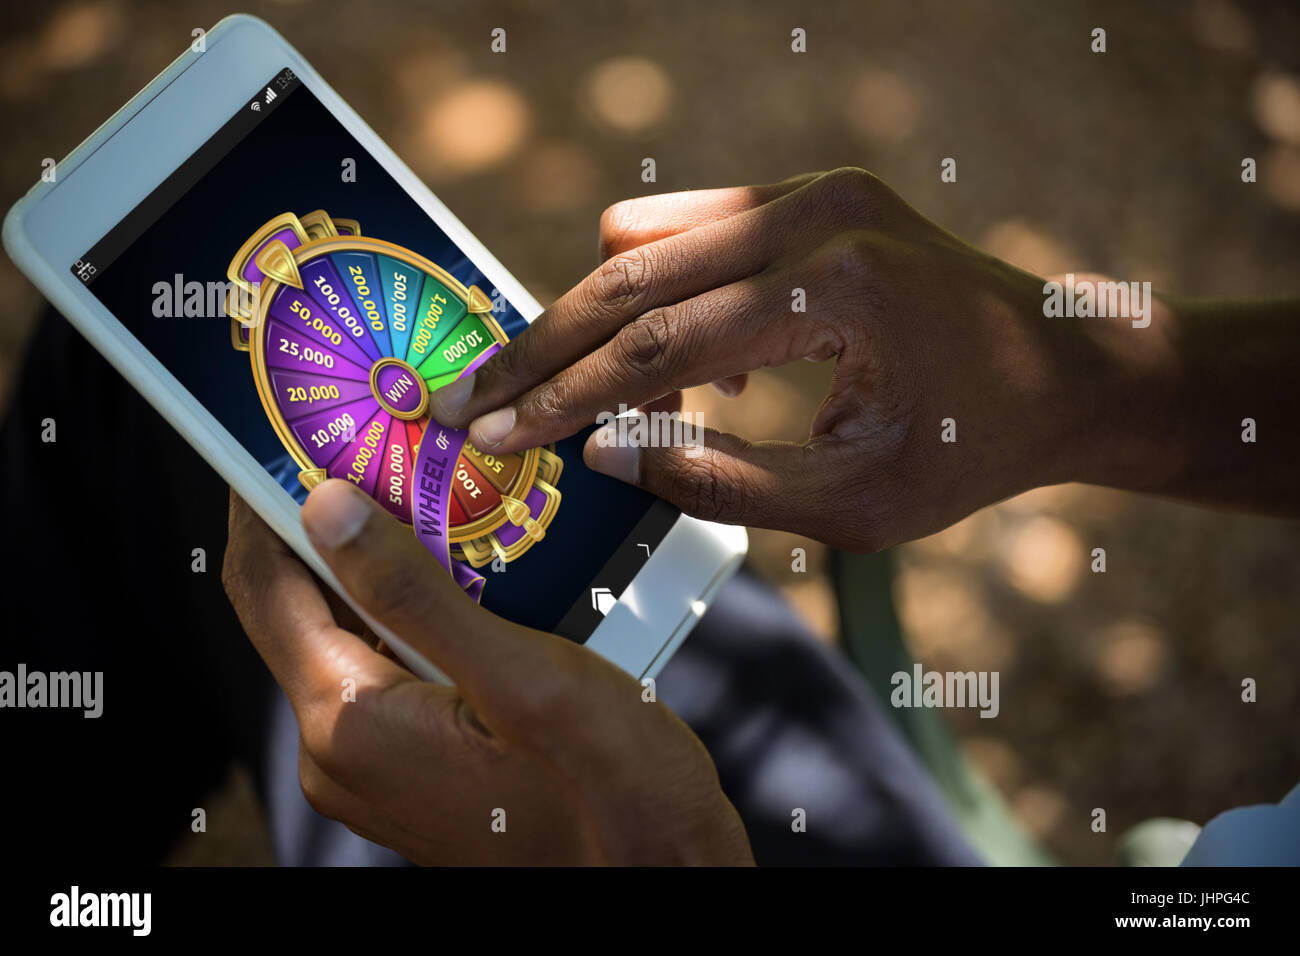 Colorful wheel of fortune on mobile display against man using tablet computer Stock Photo